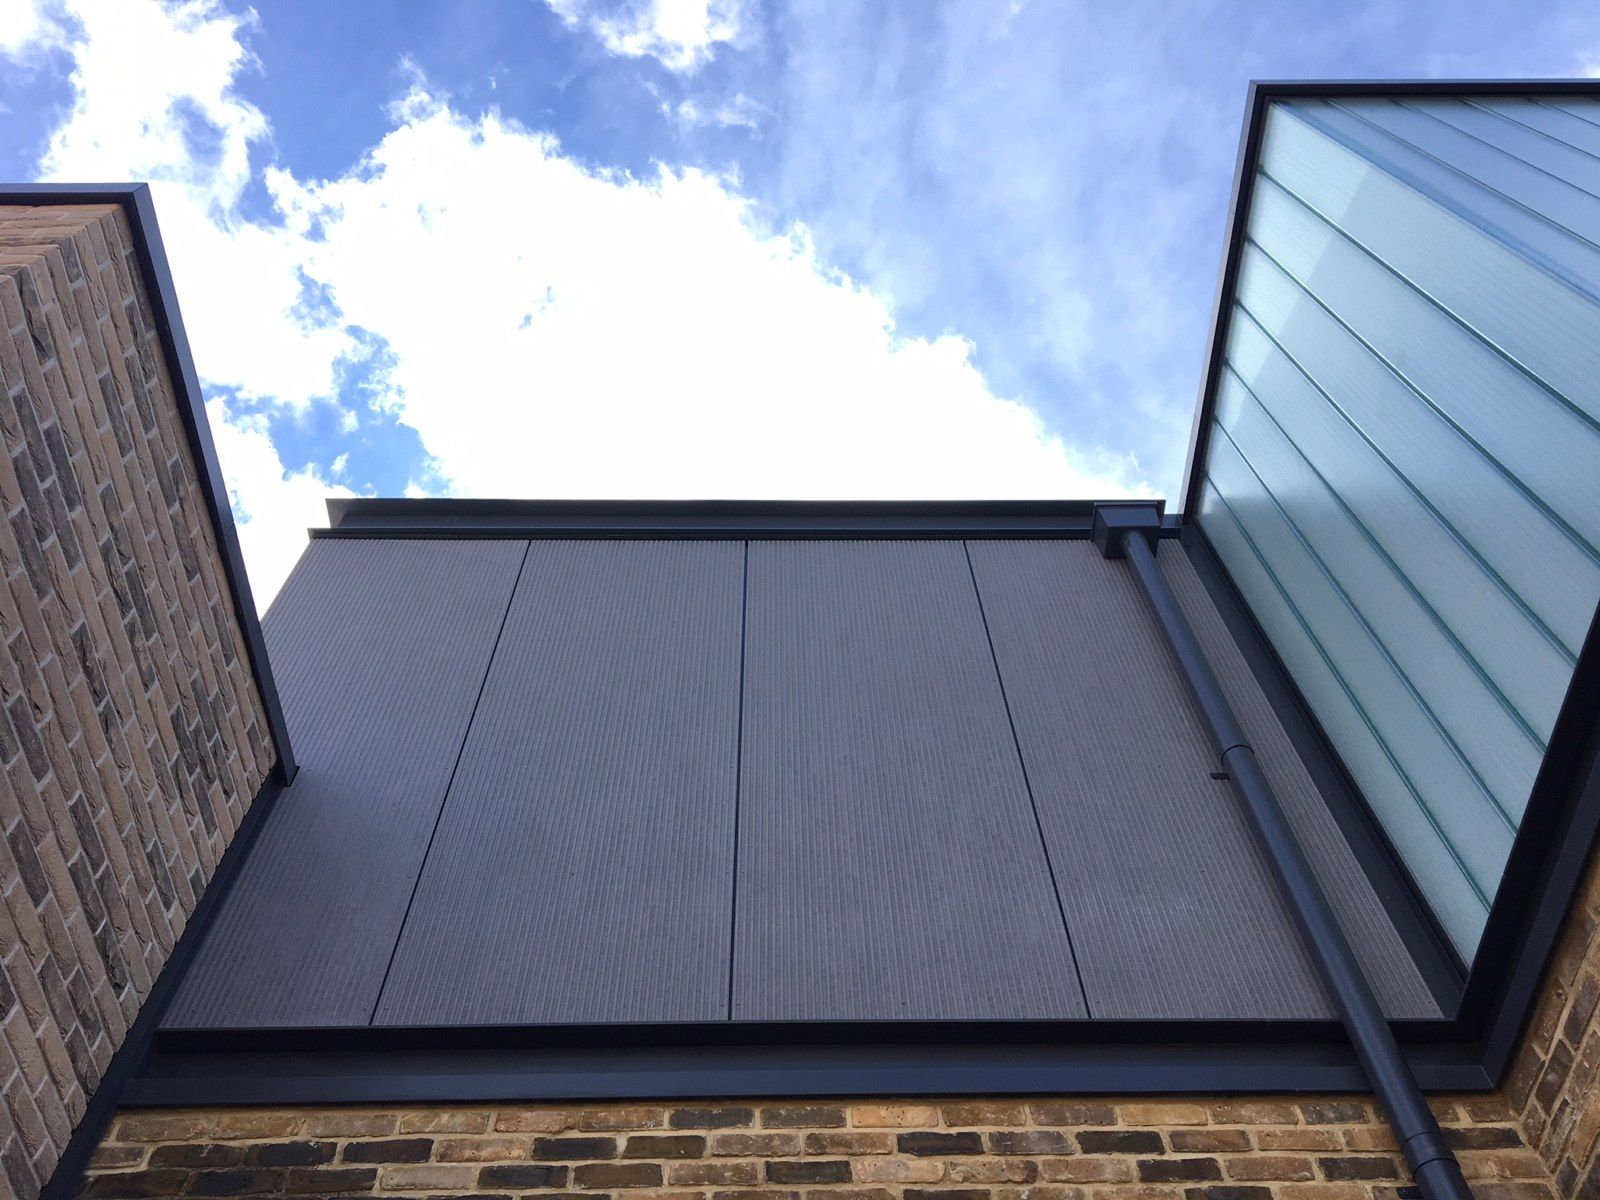 Vertec Roofing Cladding Marley Equitone Linea Brickslip Veterans Aid Limehouse Roof Cladding Cladding Roofing